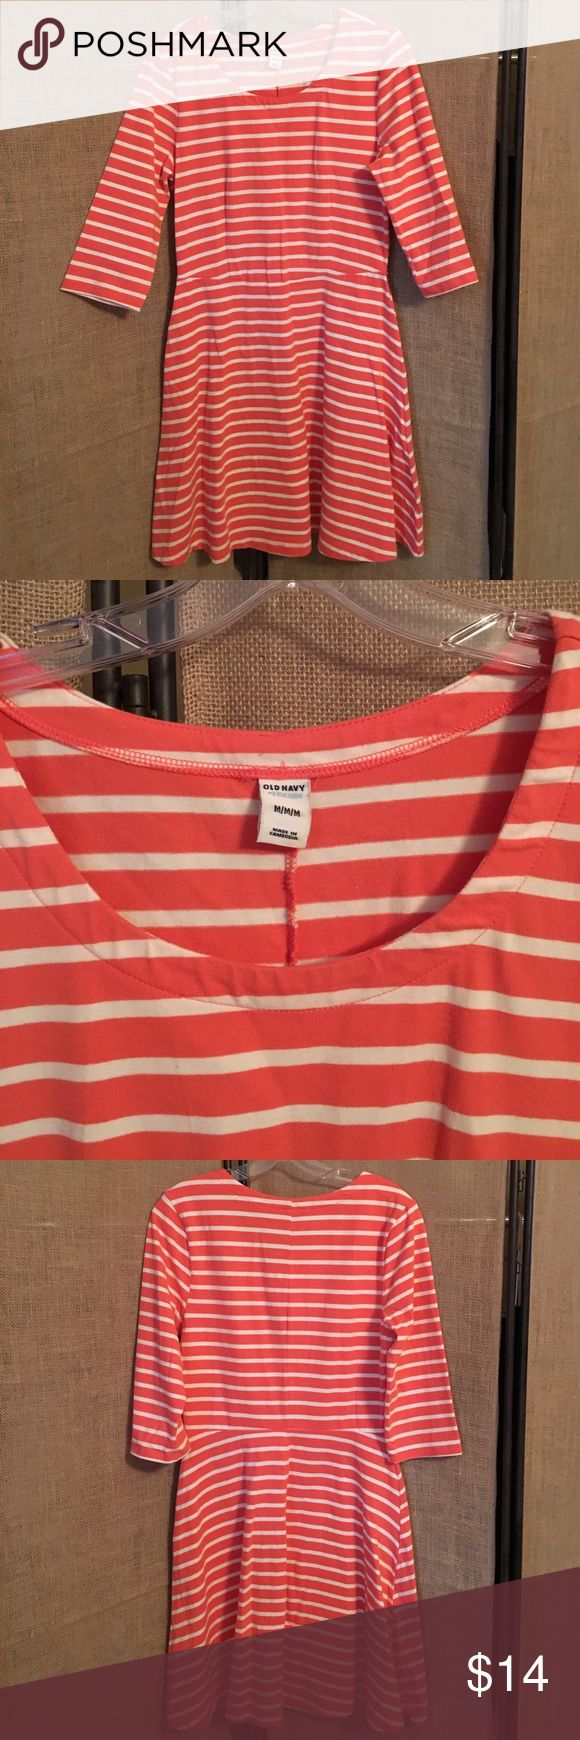 Old Navy Striped Dress Old Navy Crew Neck Striped Dress in great condition Old Navy Dresses